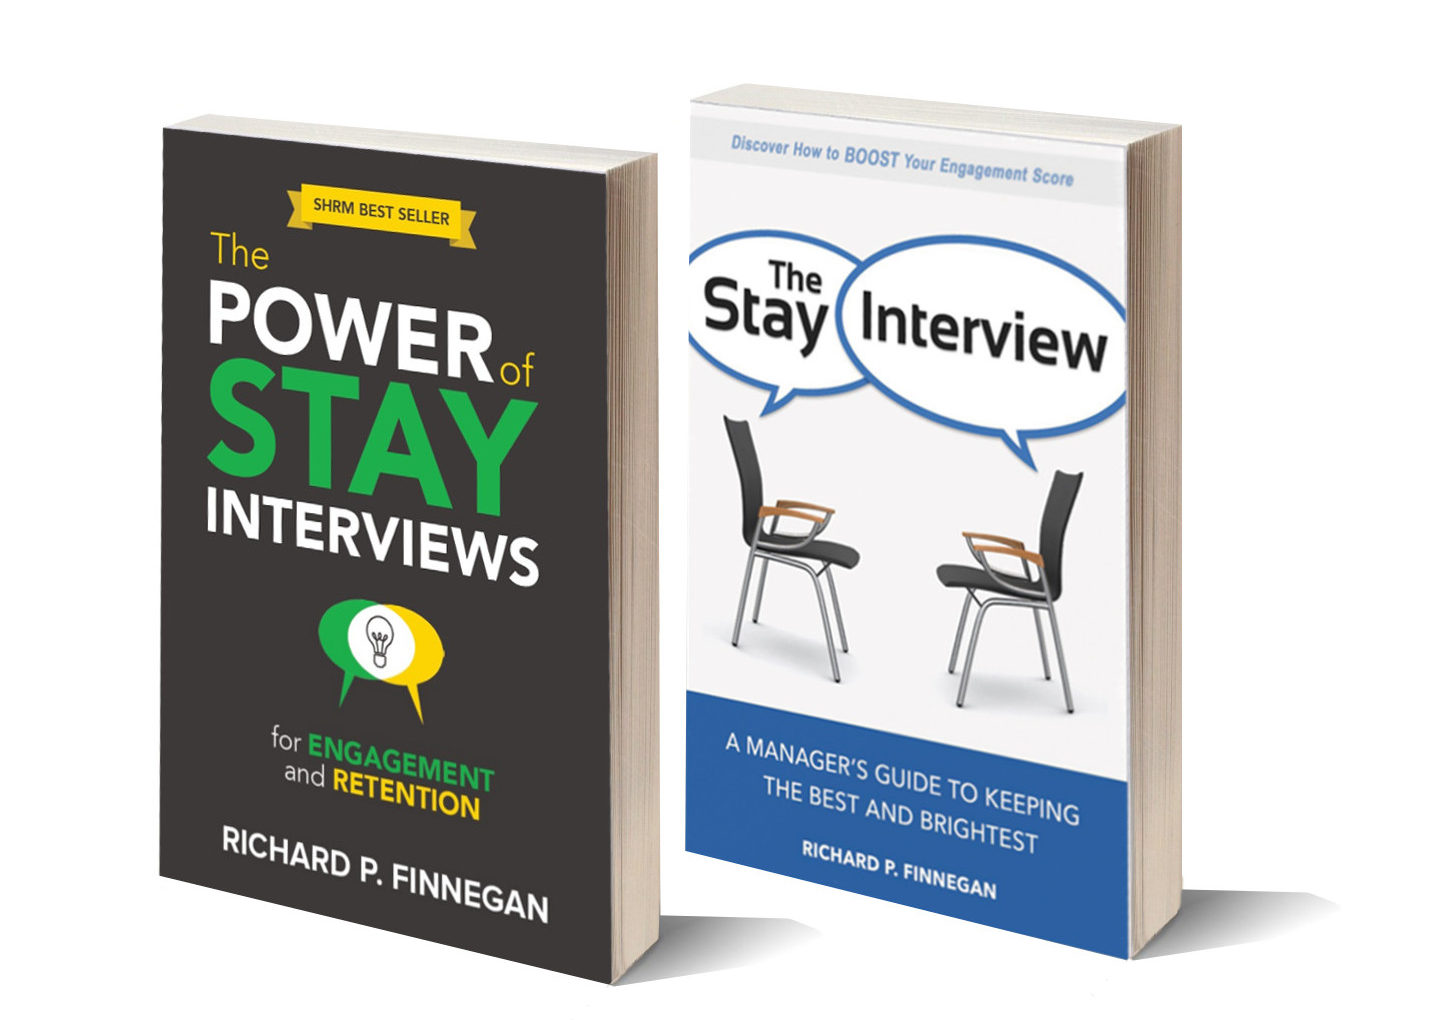 dick finnegan books on stay interviews new covers